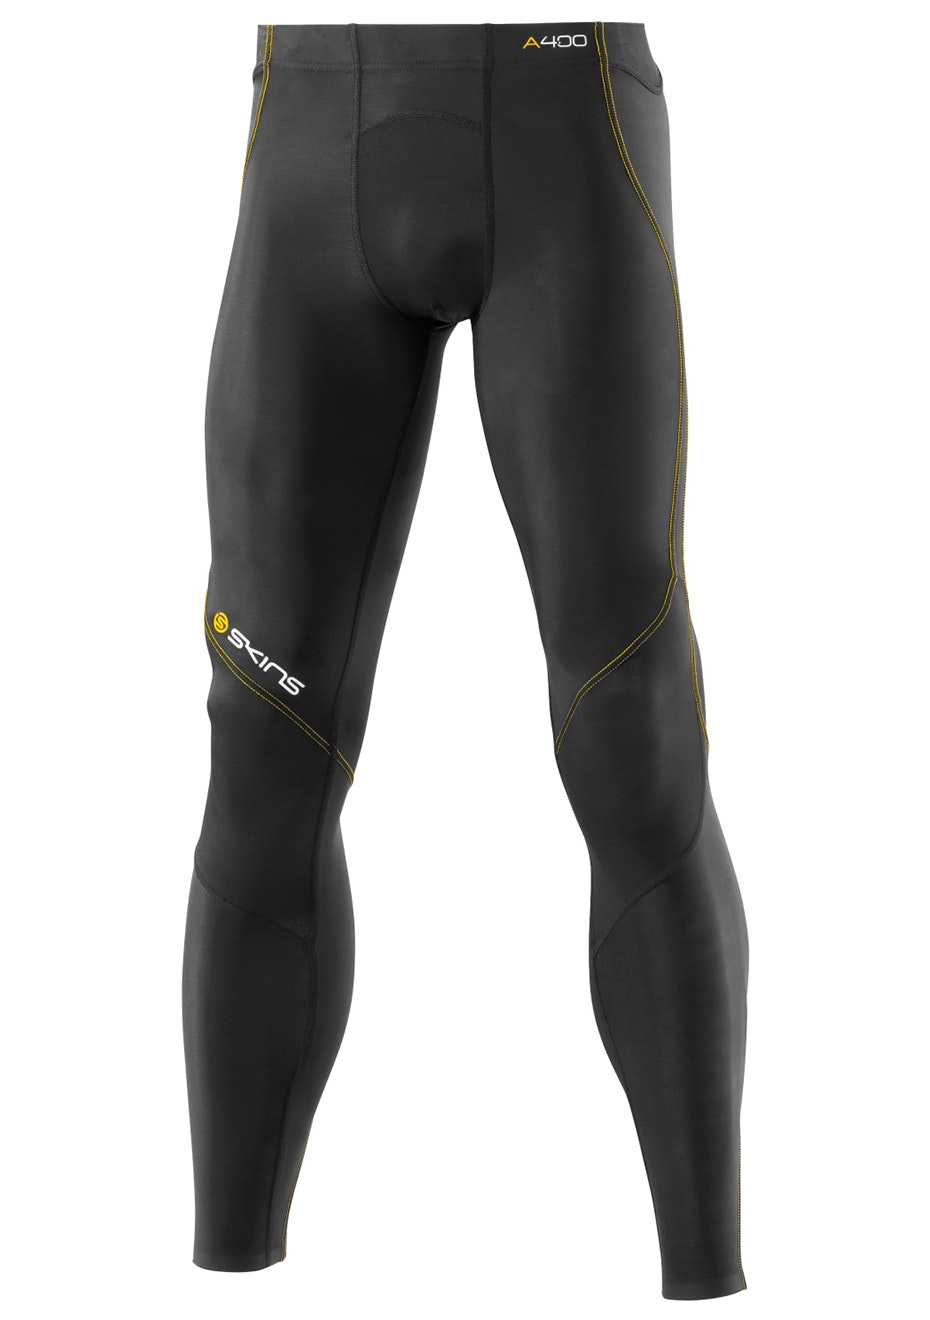 Skins - A400 Black-Yellow Long Tights - Mens